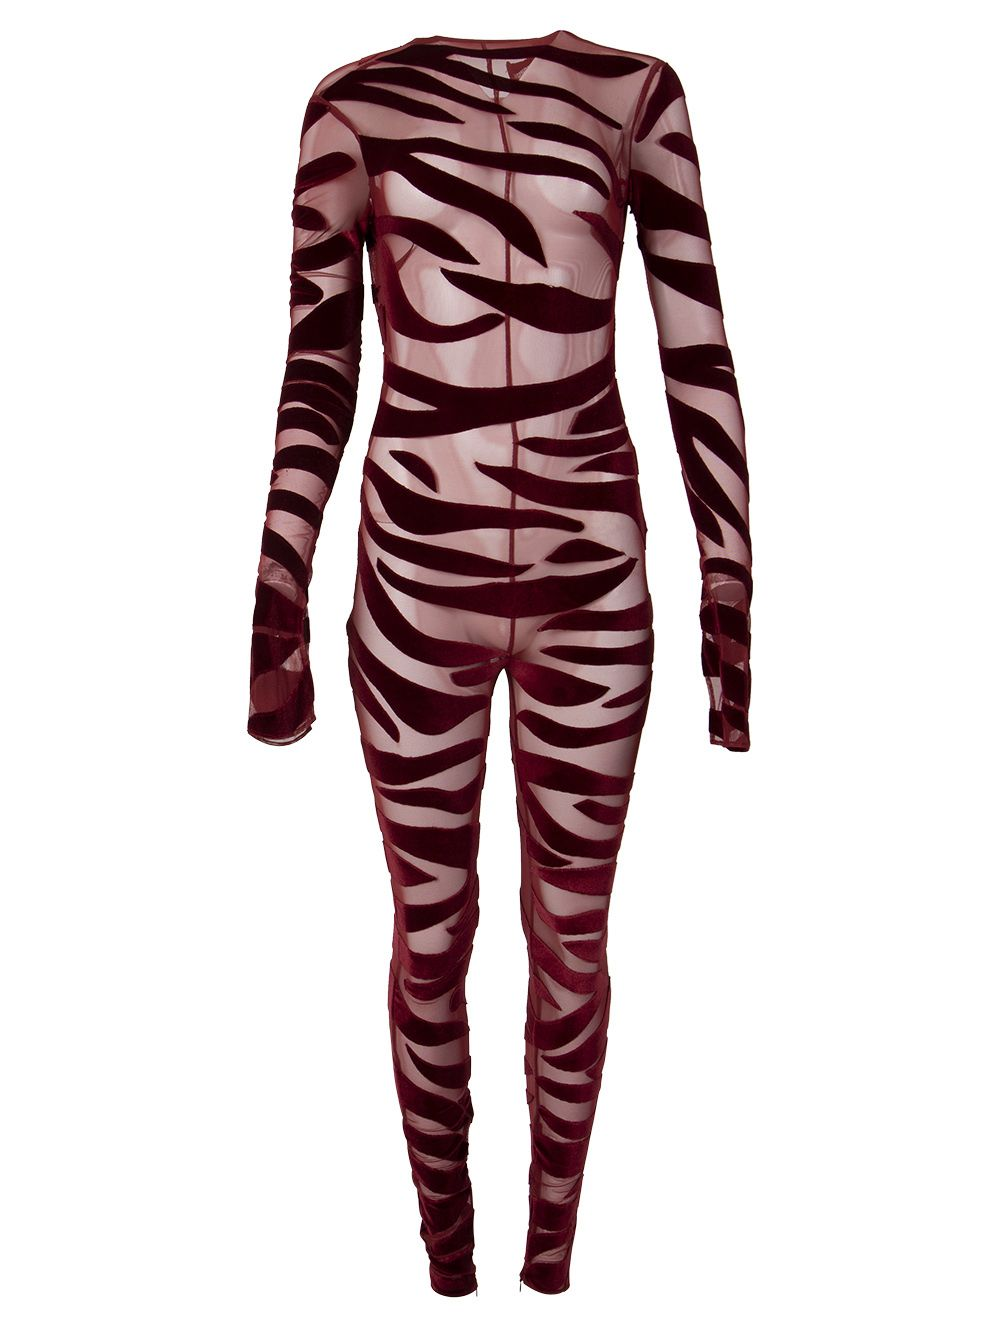 Tiger Print Catsuit Oxblood Red